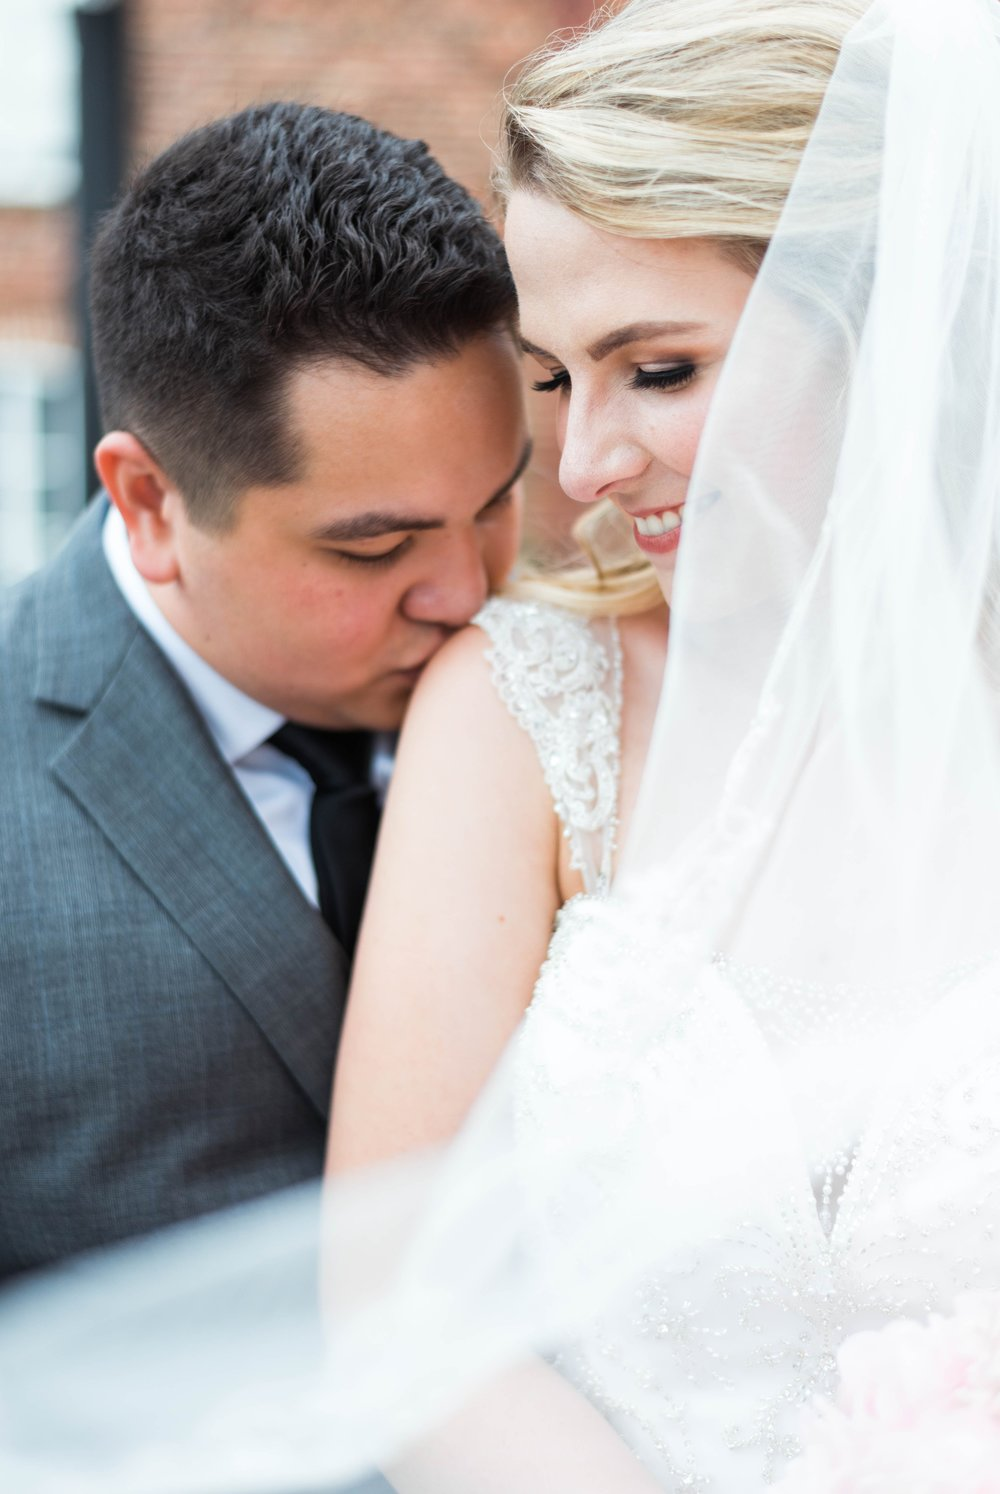 LynchburgVirginia_Virginiaweddingphotographer_michaelkim 45.jpg